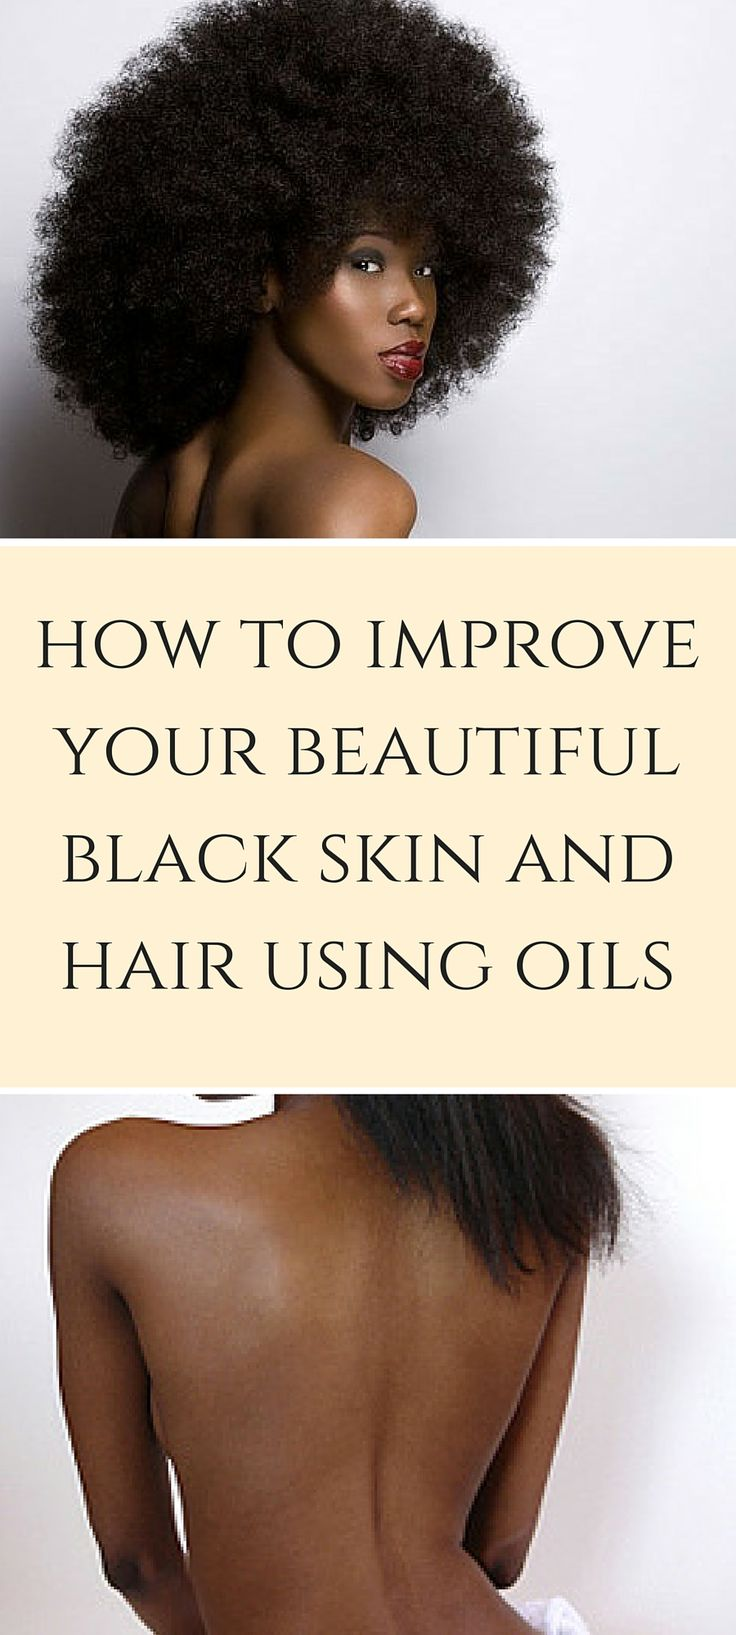 Typically it's thought that African American skin is oily and you shouldn't use oils on oily skin. But on the contrary,... http://blog.nyrajuskincare.com/2016/06/24/how-to-improve-your-beautiful-black-skin-and-hair-using-oils/